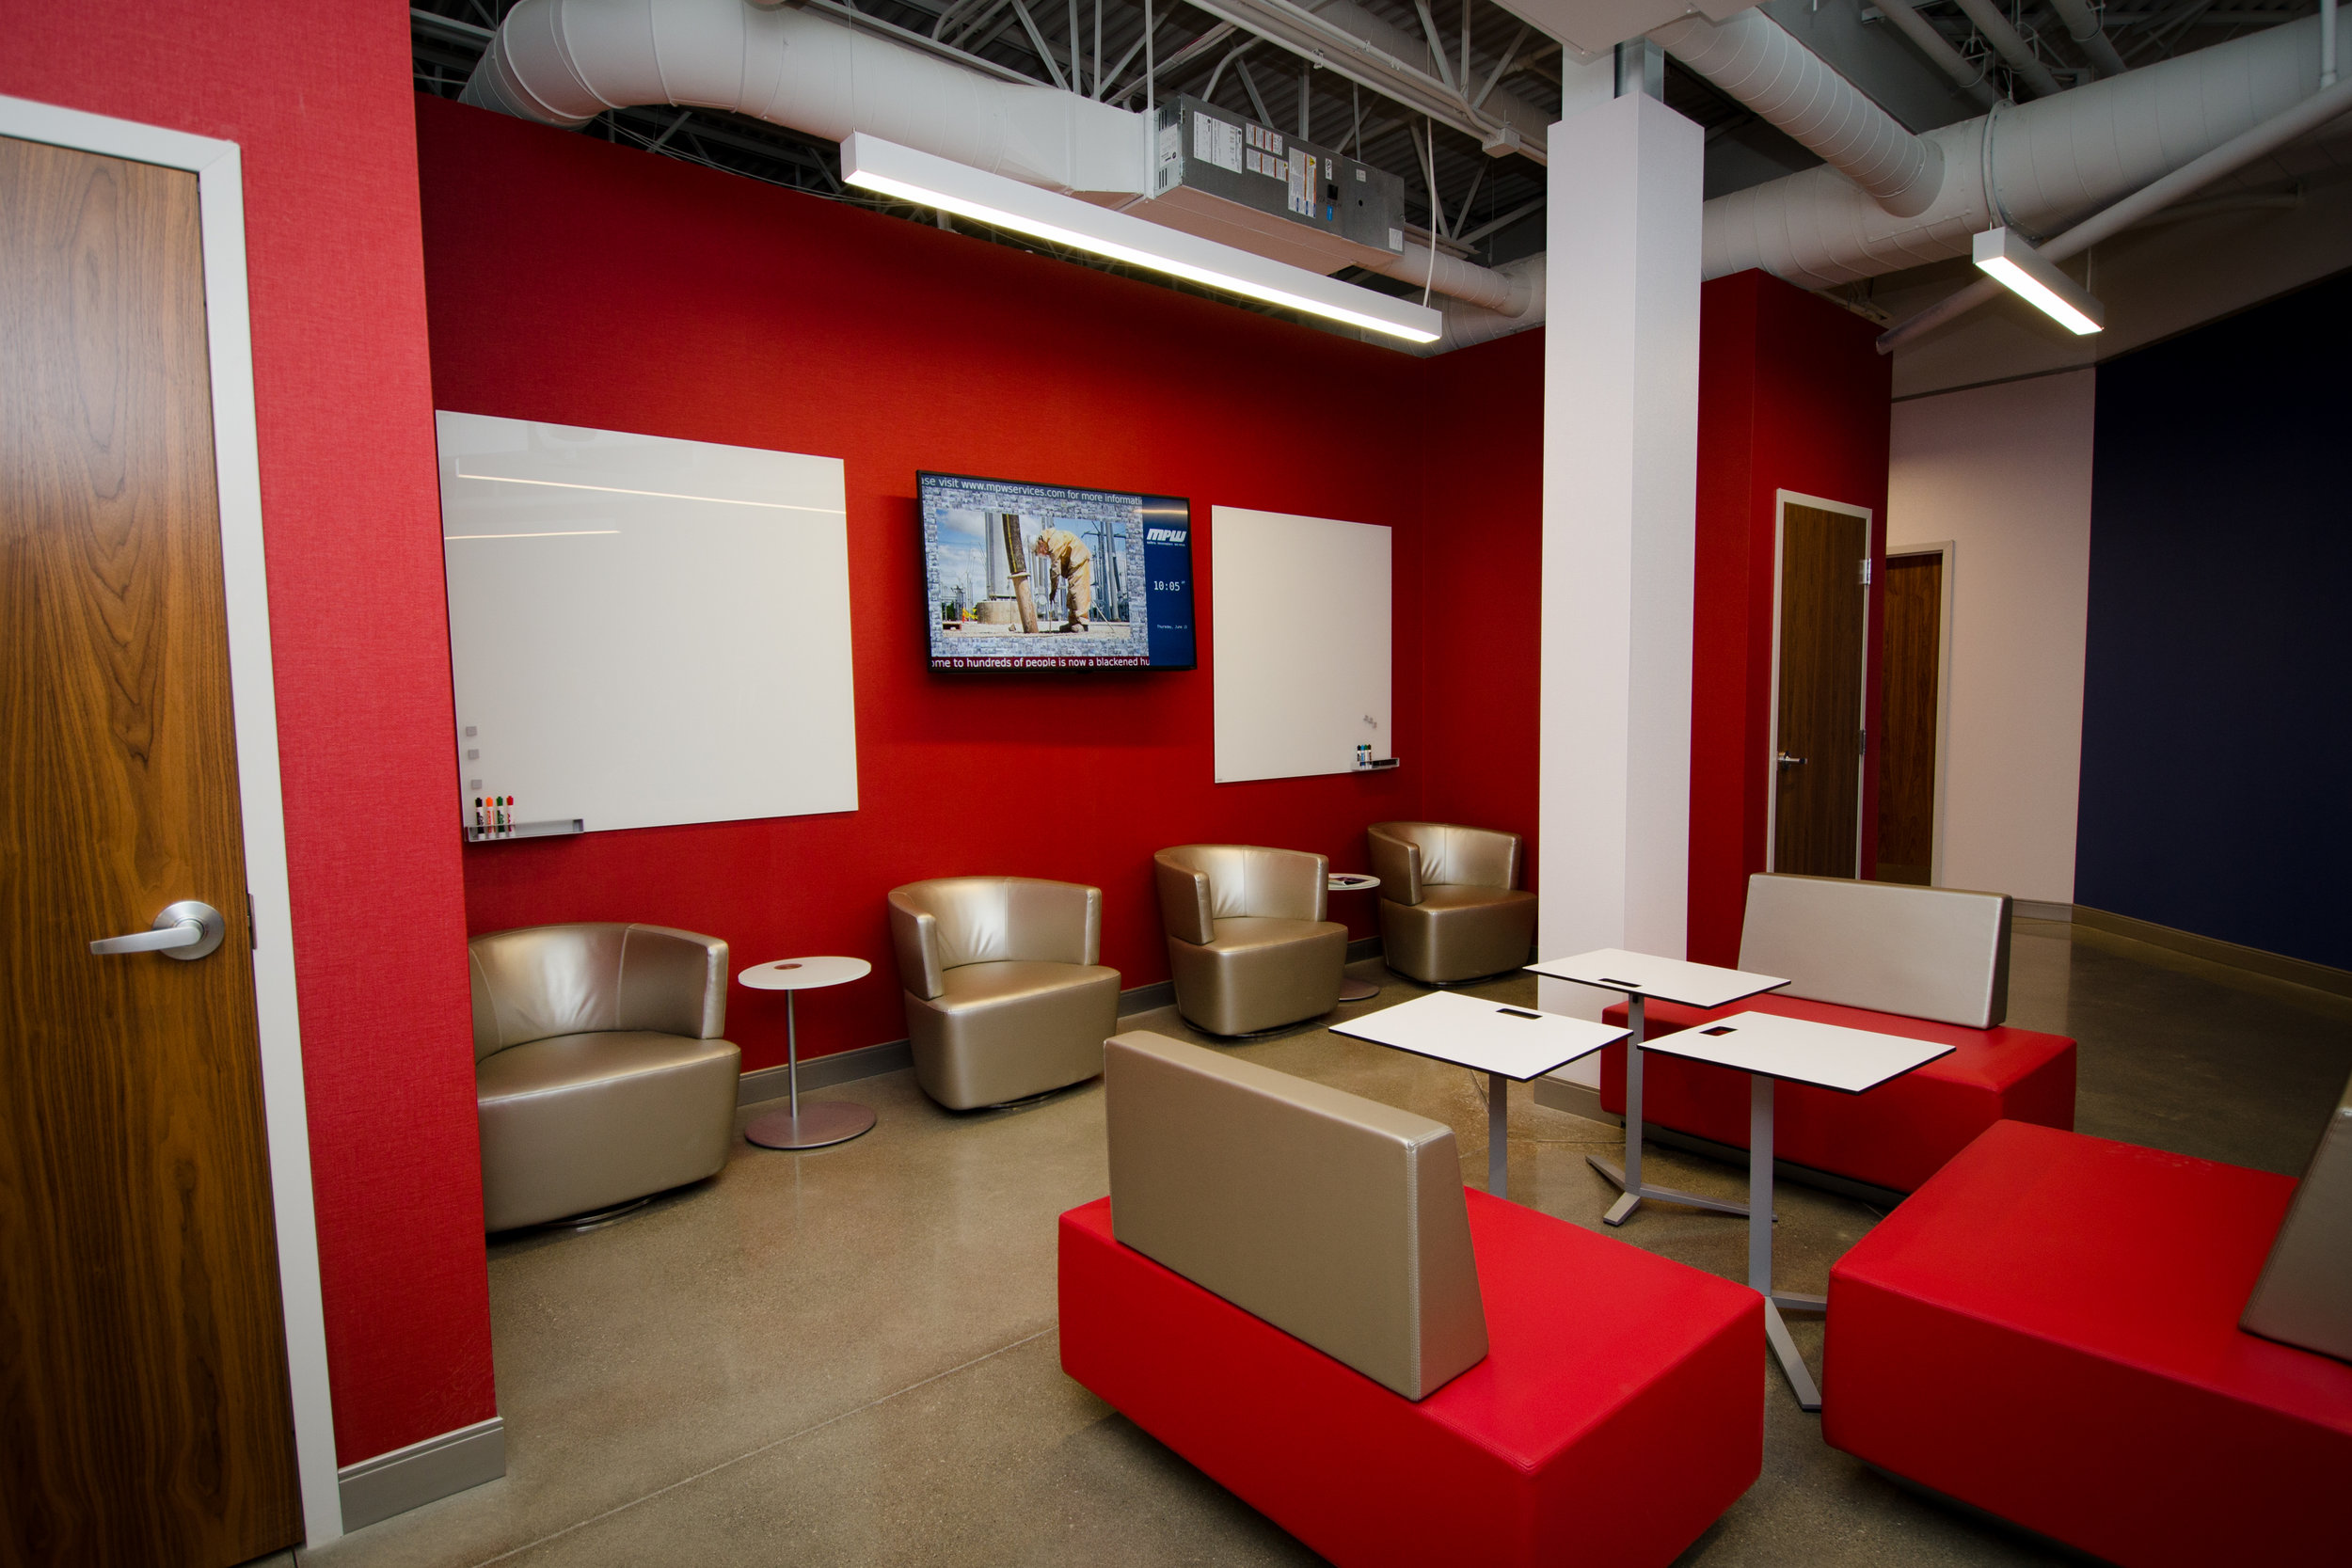 Open seating areas offer flexible work spaces, digital screens, white boards, and WiFi.